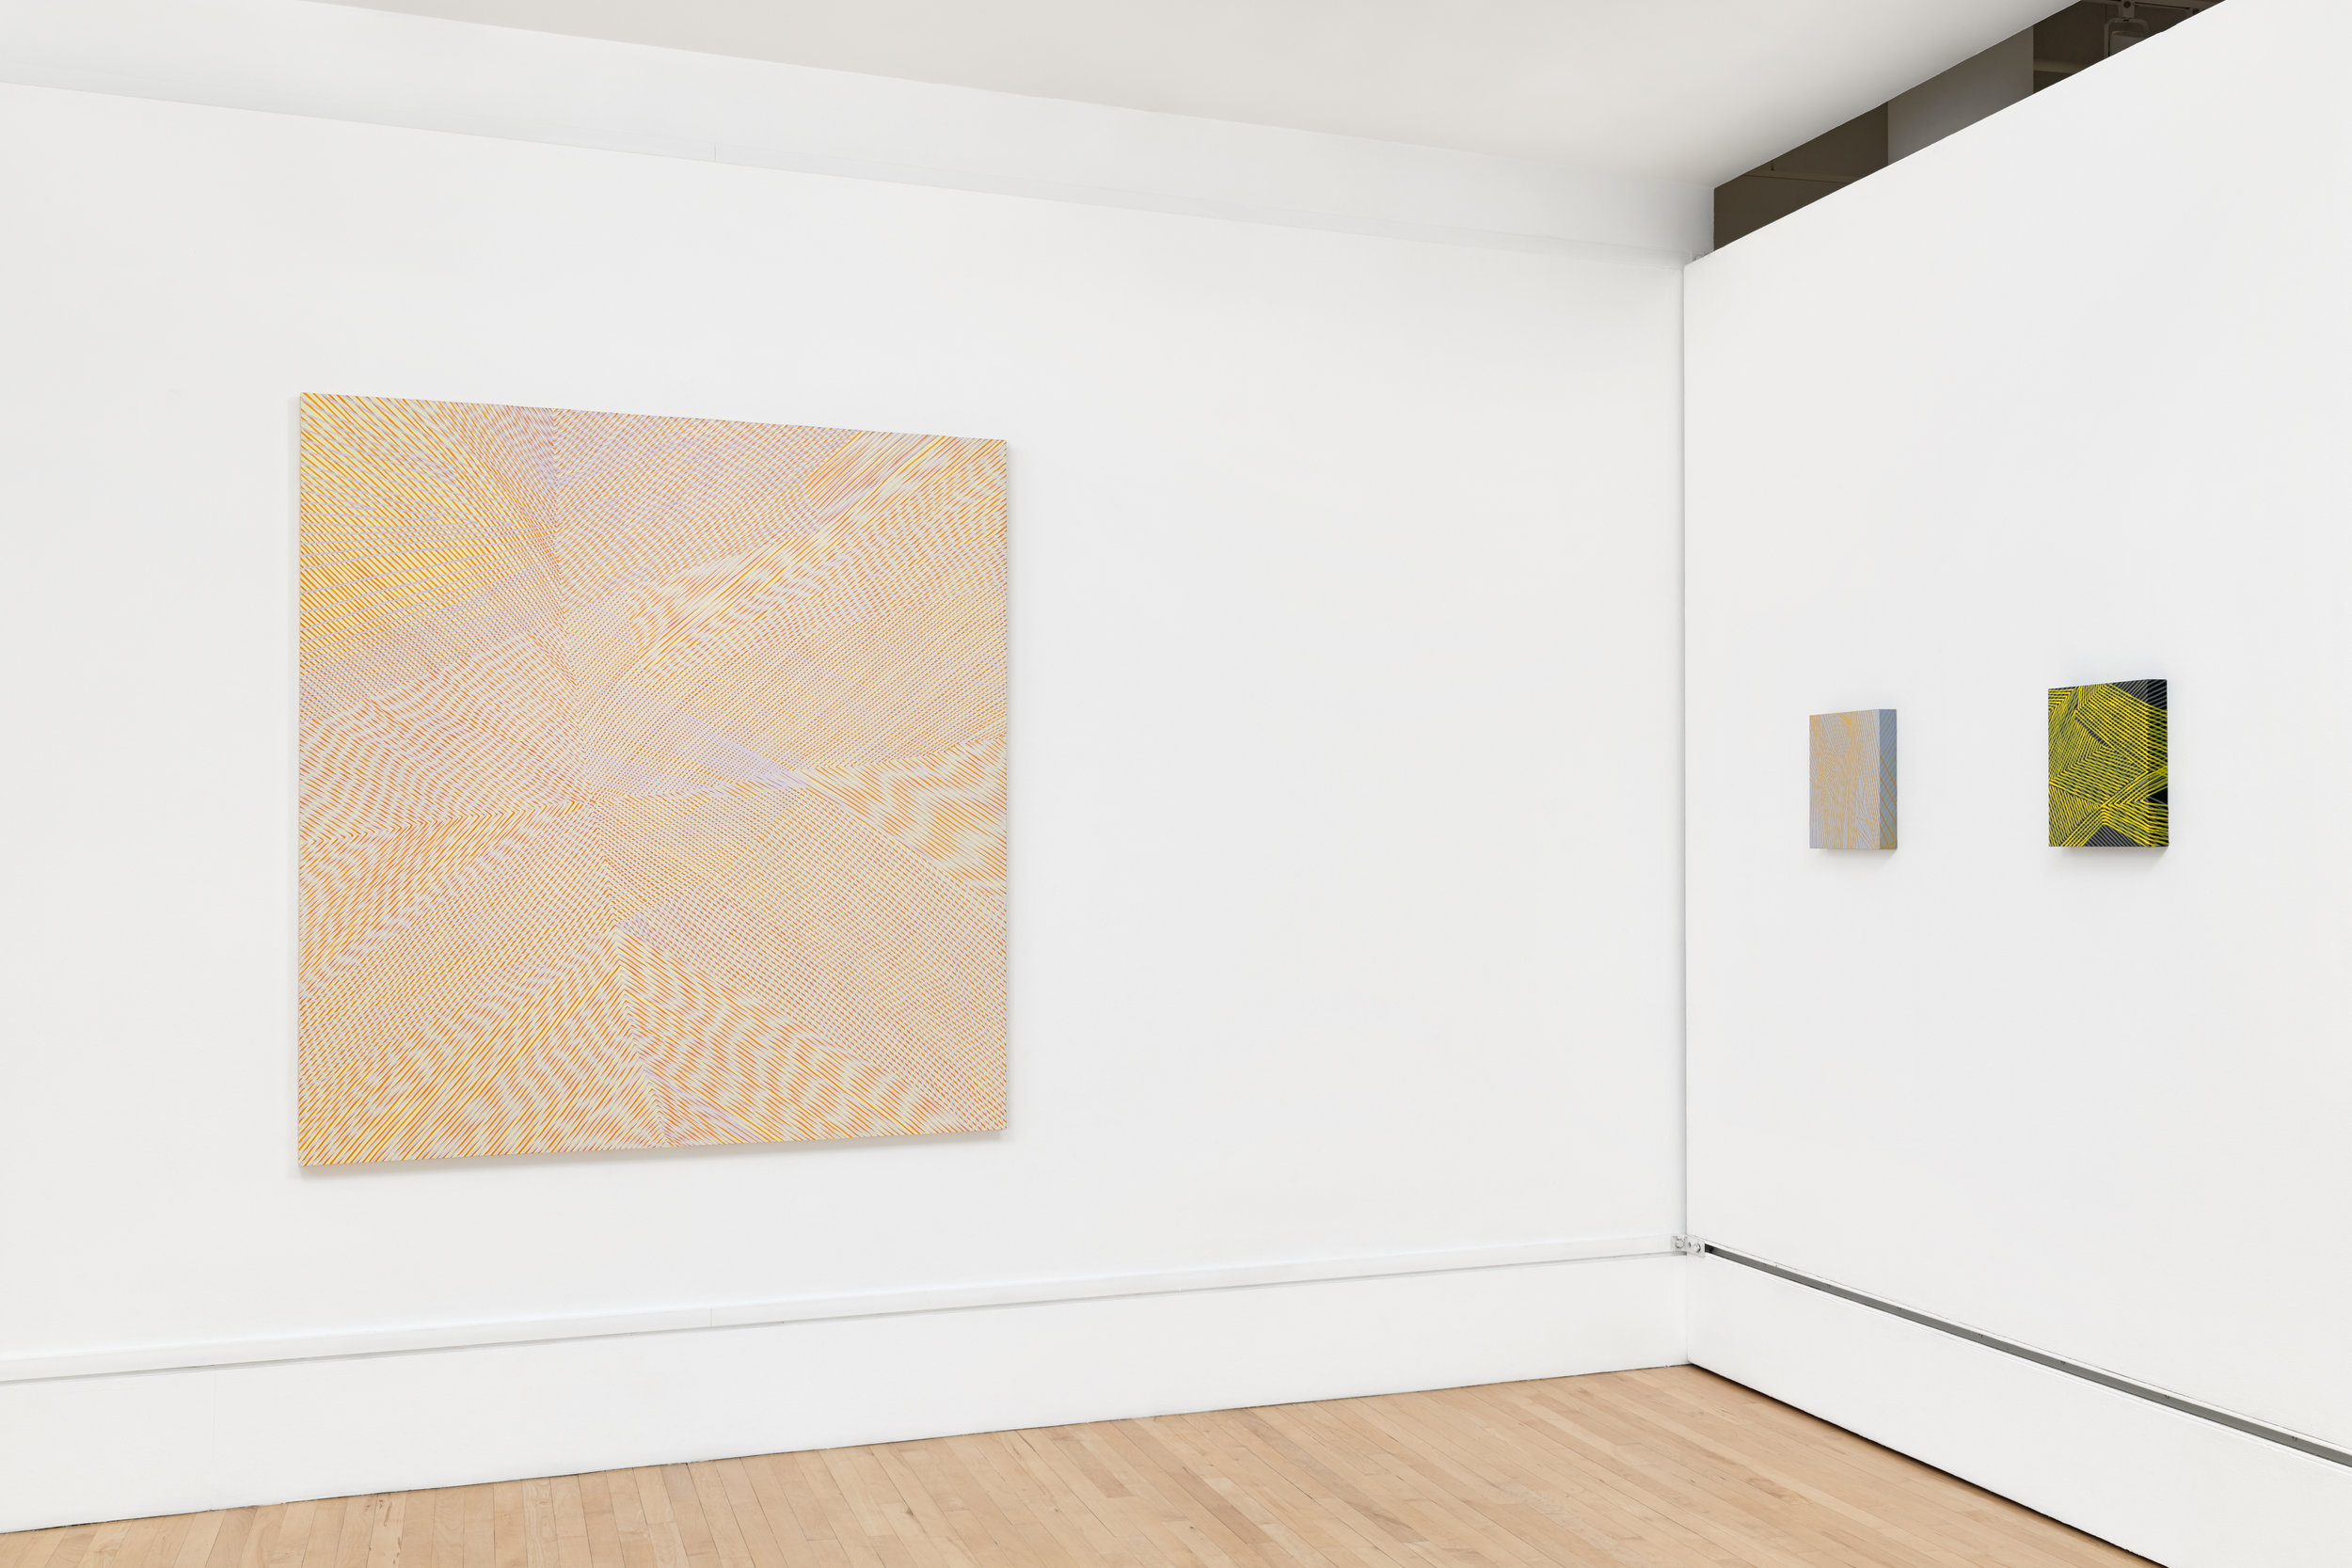 Installation view: About Abstraction: group show with 17 Bay Area Women Artists, The Bedford Gallery, 2017.